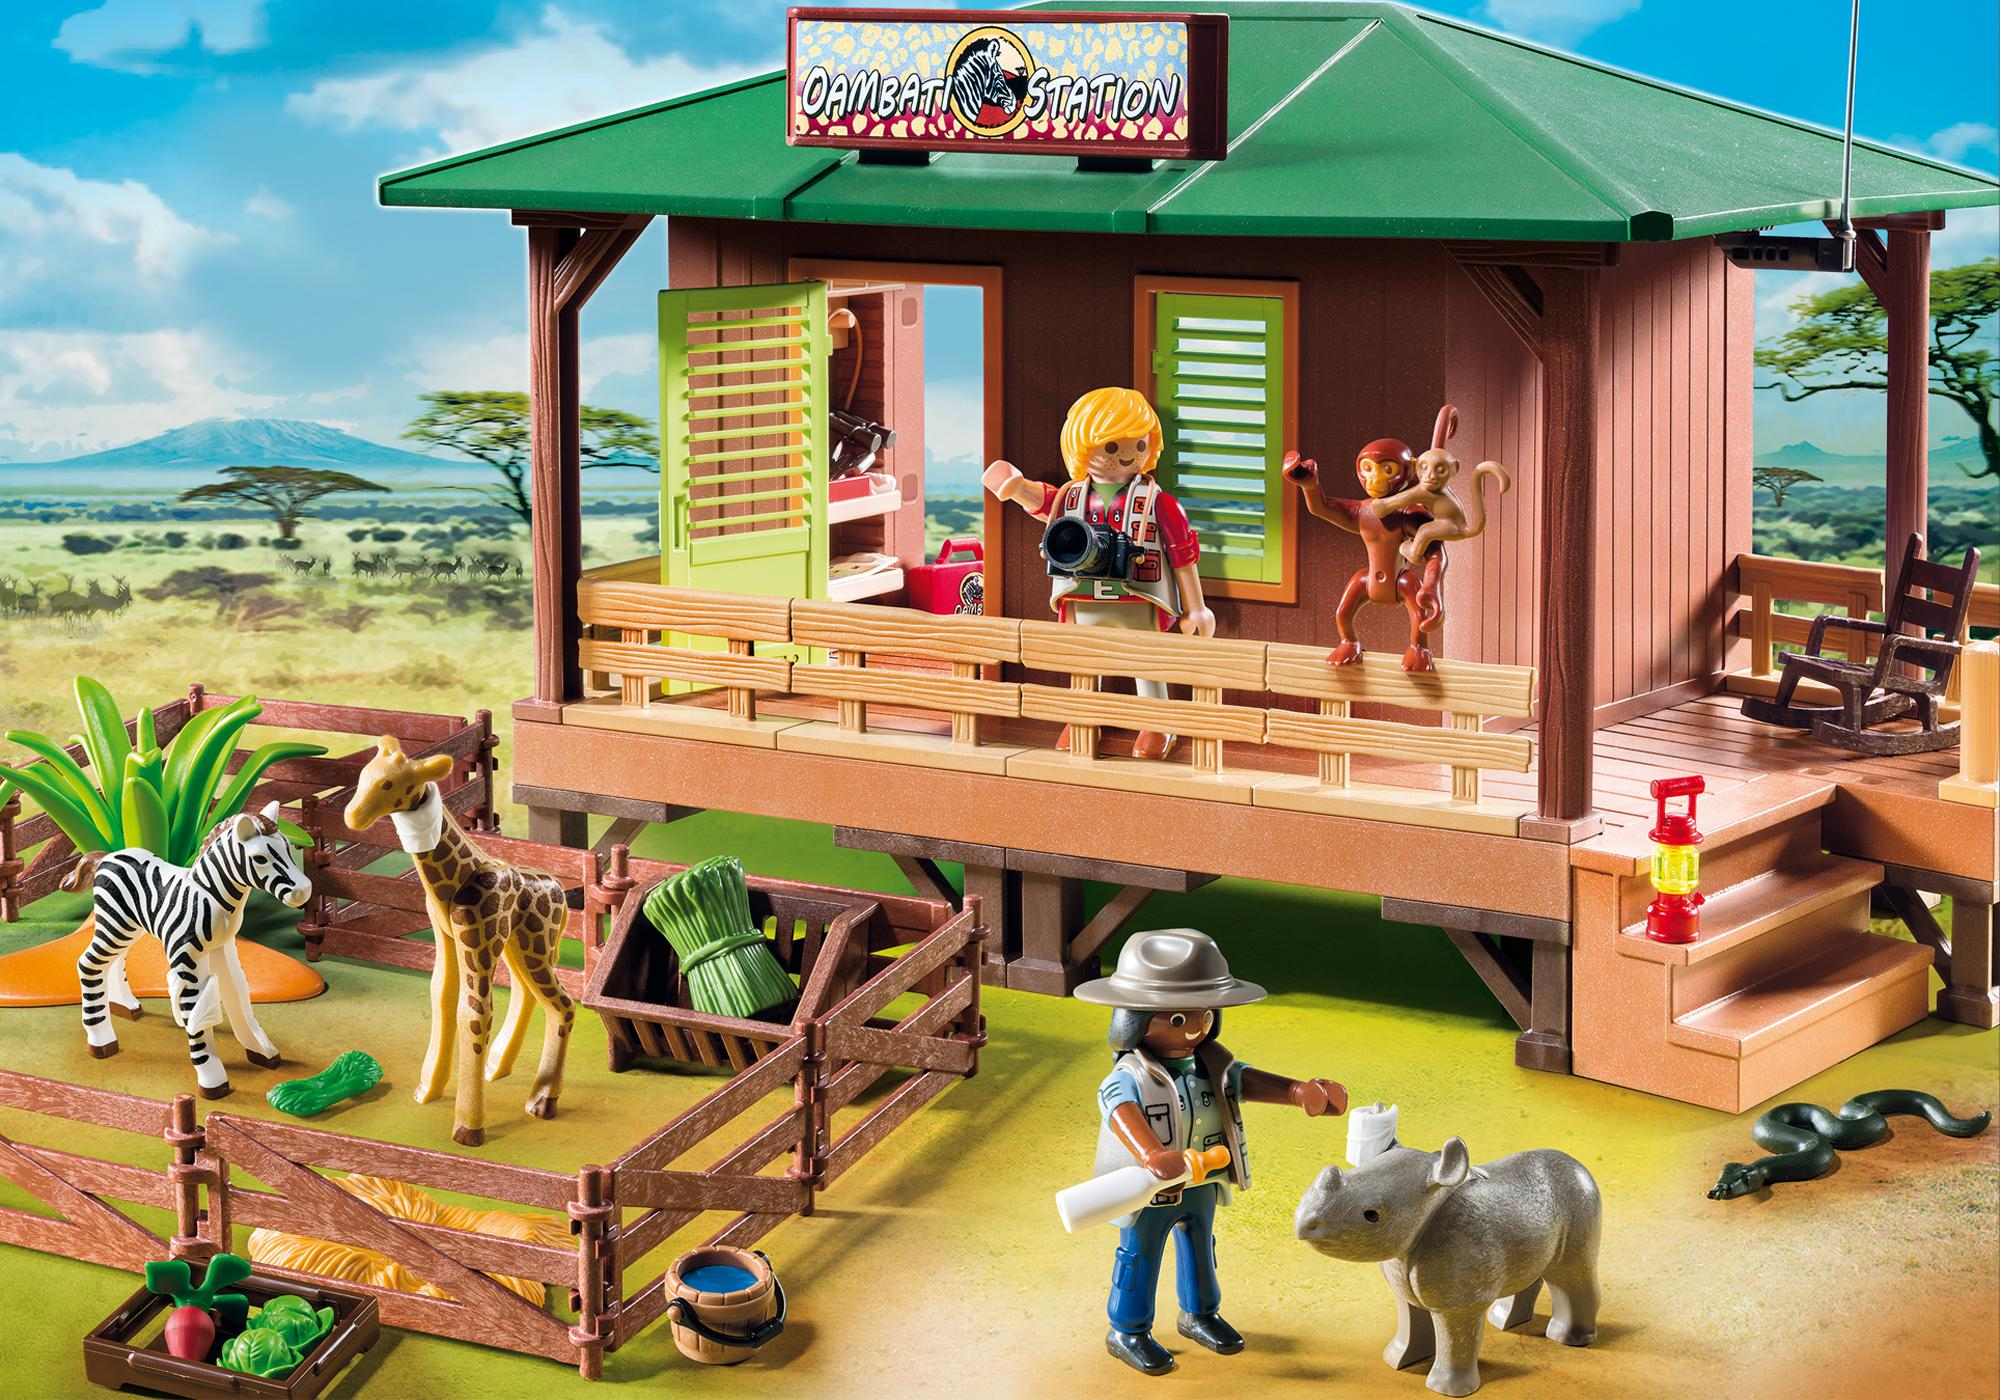 http://media.playmobil.com/i/playmobil/6936_product_detail/Ranger Station with Animal Area